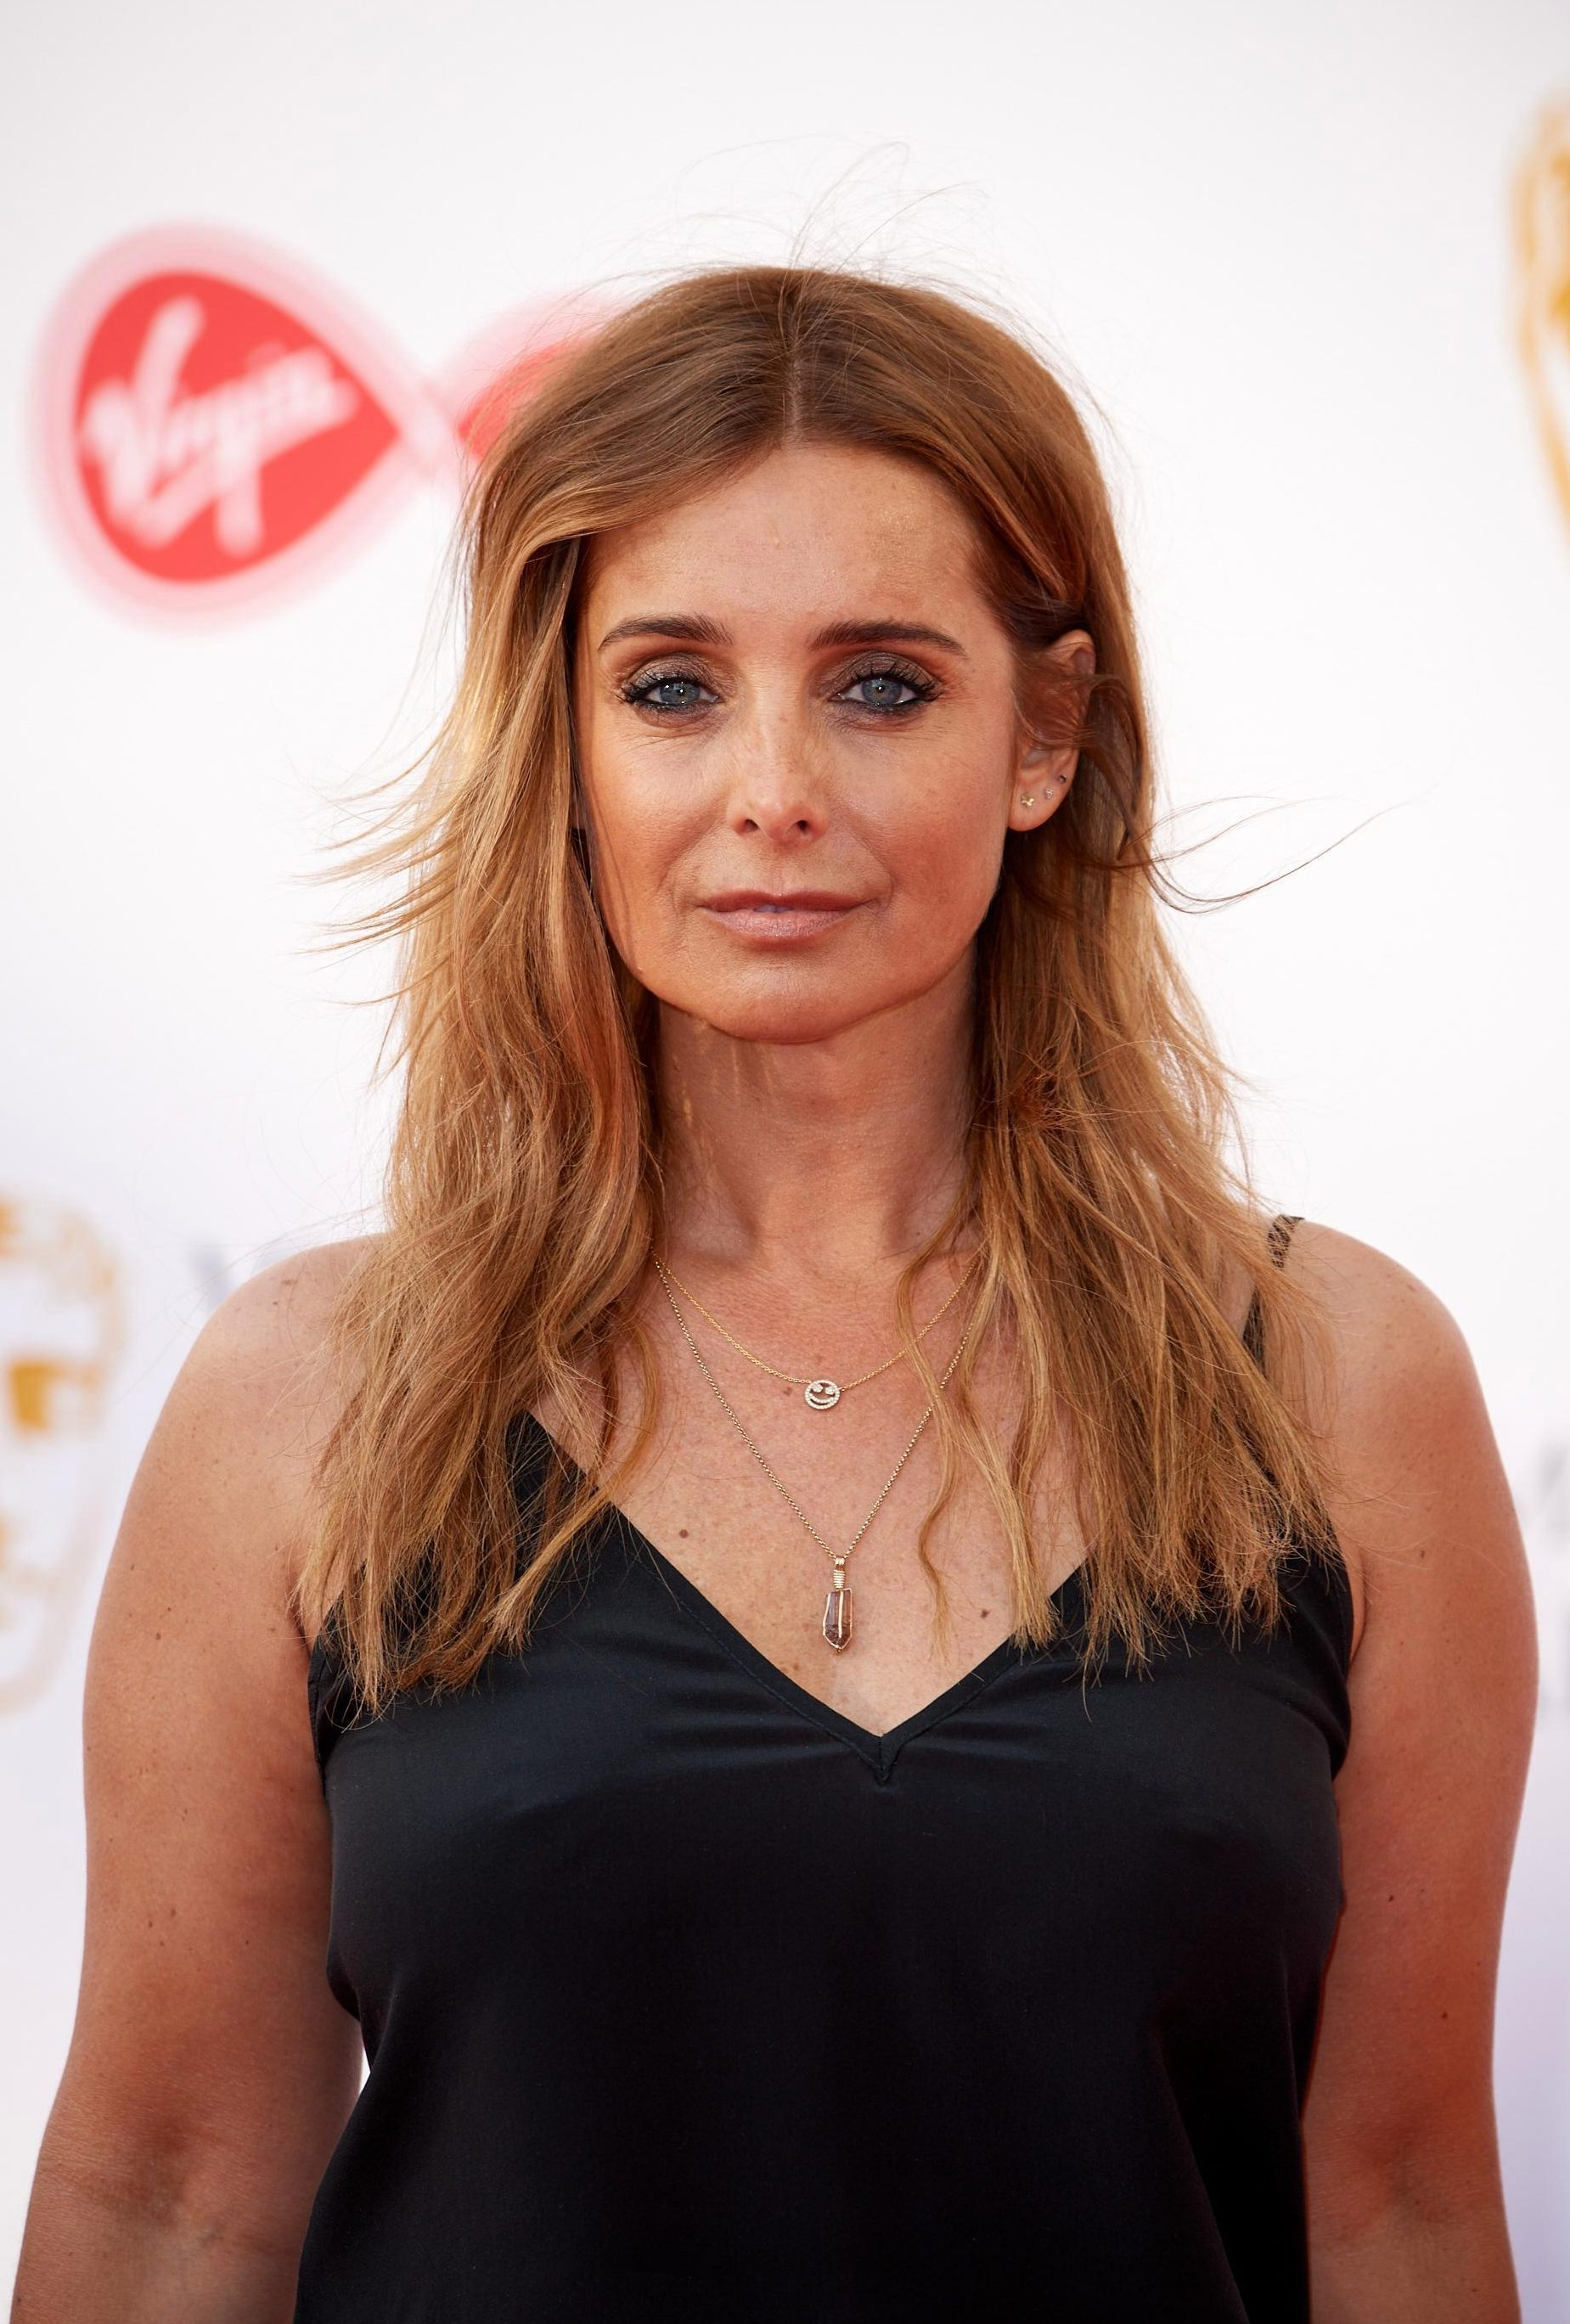 Louise Redknapp says she's 'too busy working' to date after split from Jamie